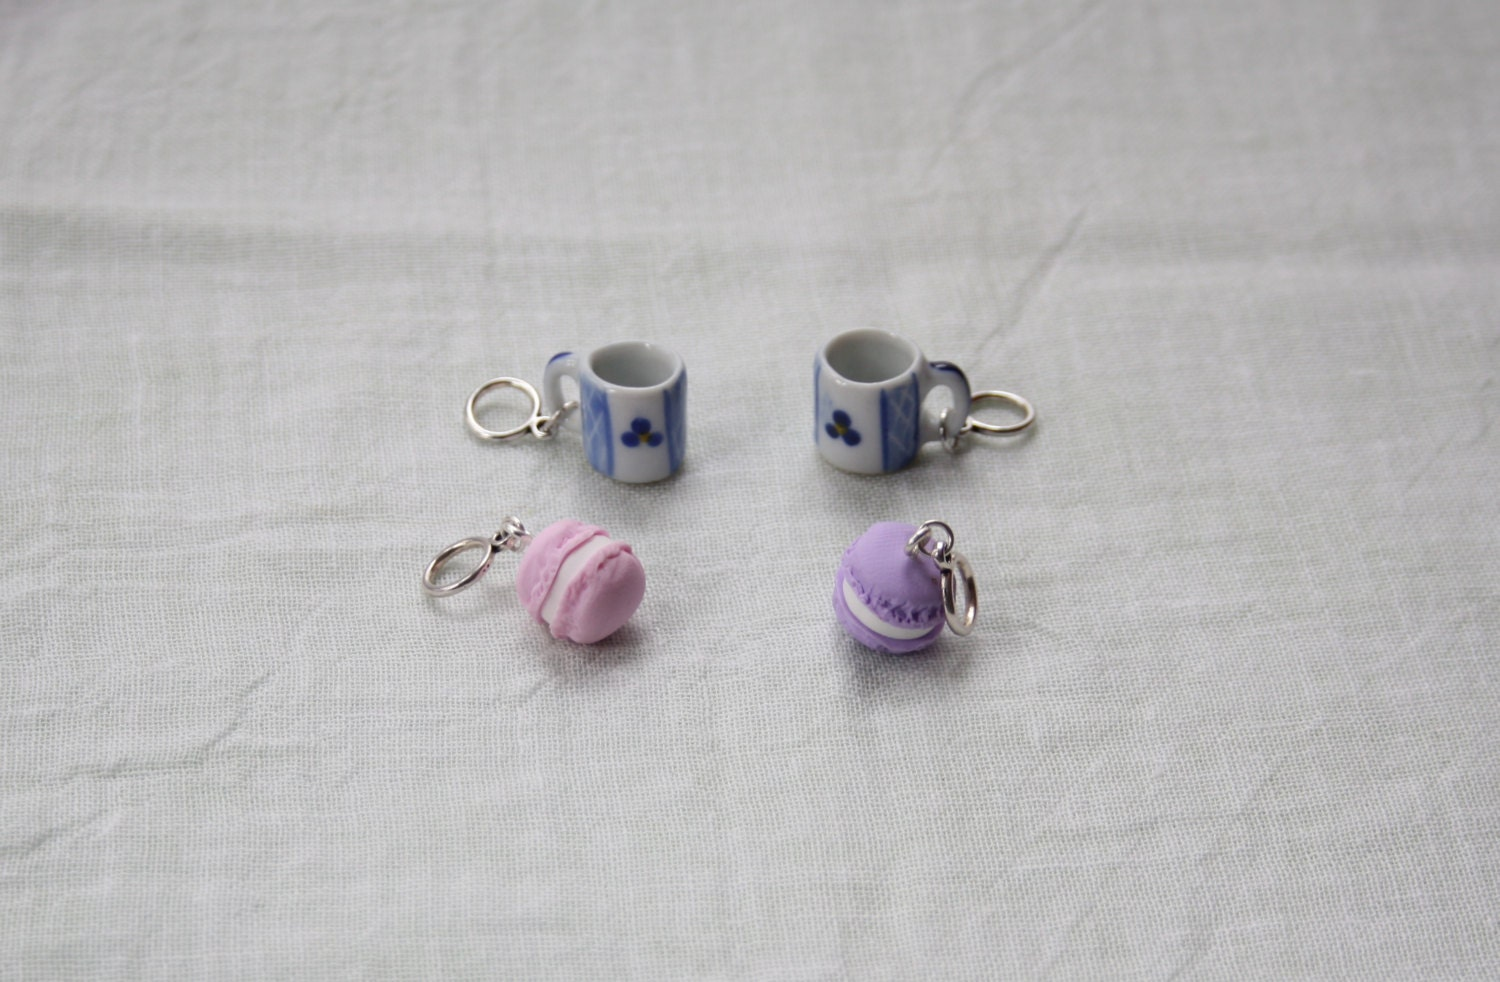 Knitting Markers Etsy : Stitchmarkers coffee break mugs cakes stitch markers